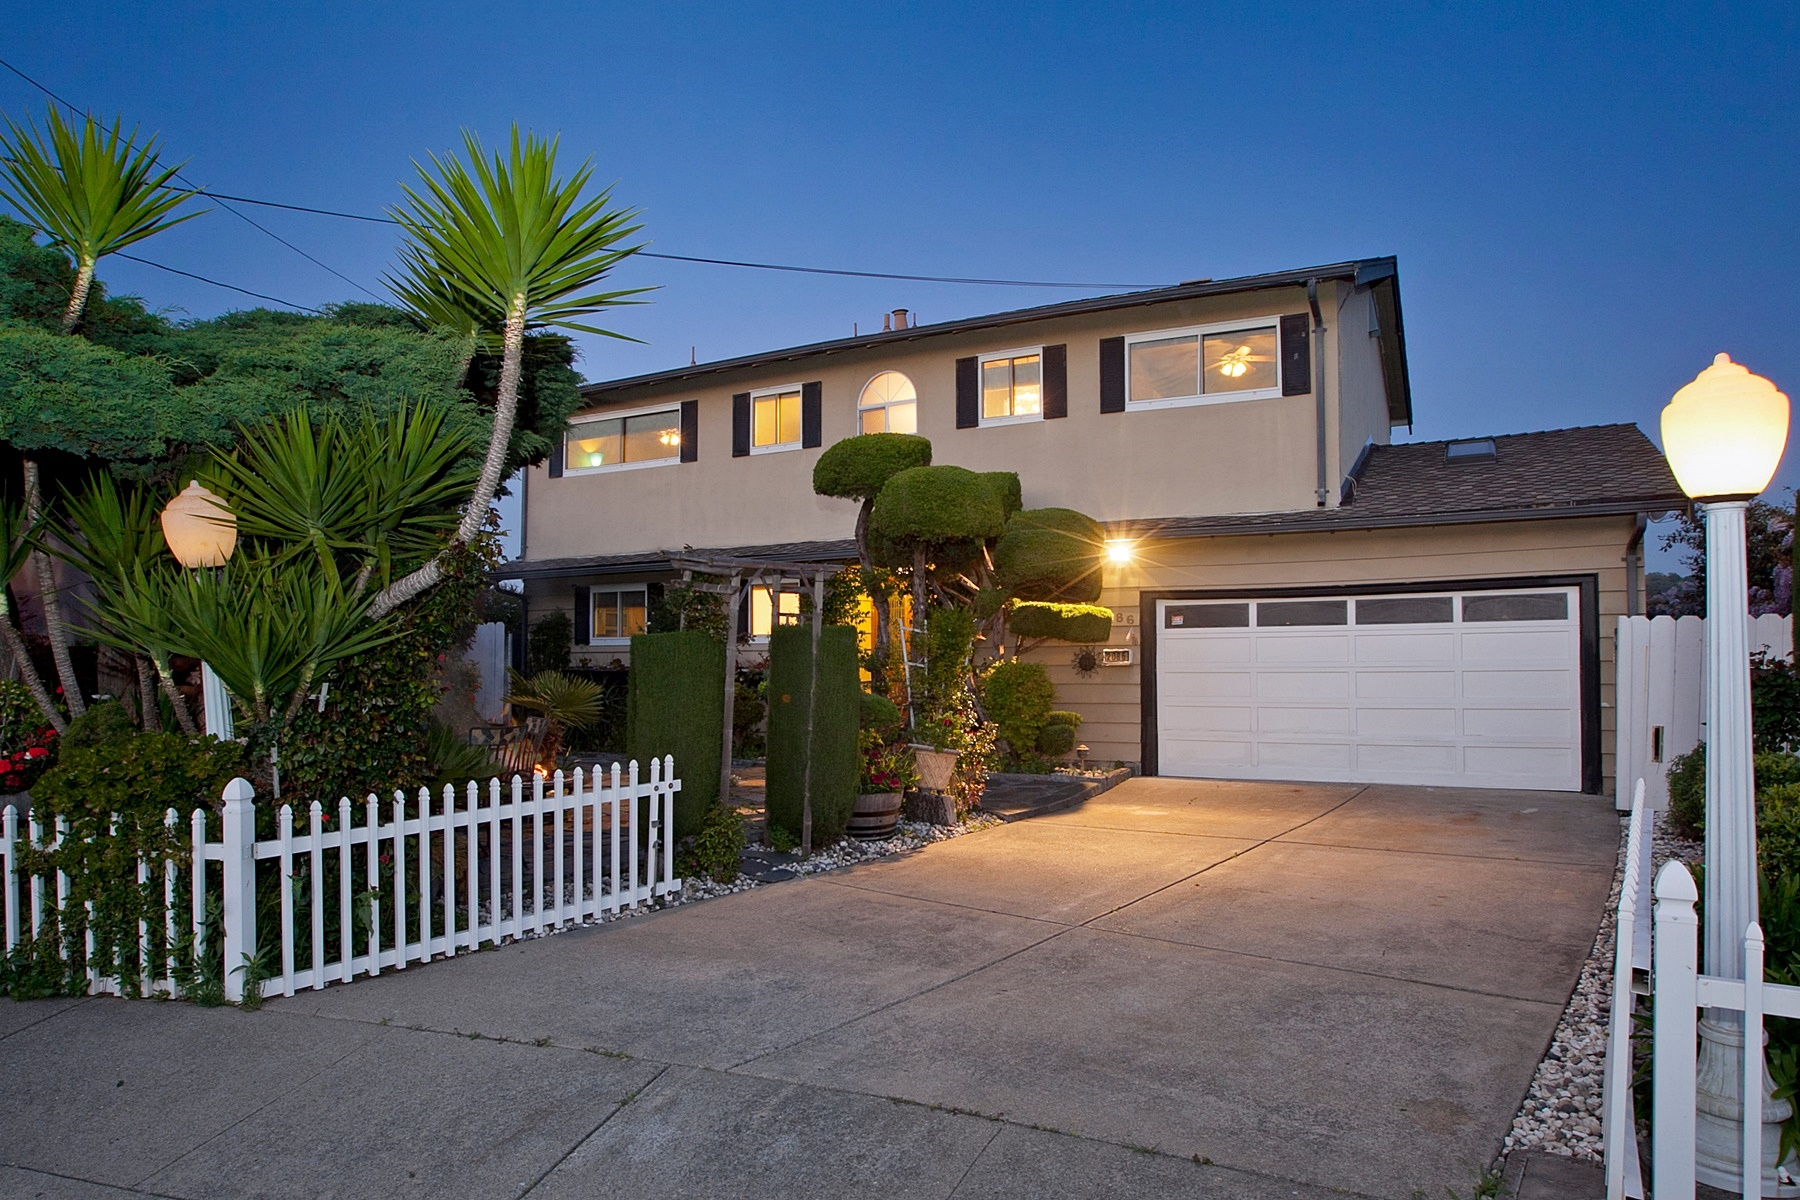 Single Family Home for Sale at Spectacular Views Of The Bay 2086 Costa Court Pinole, California 94564 United States